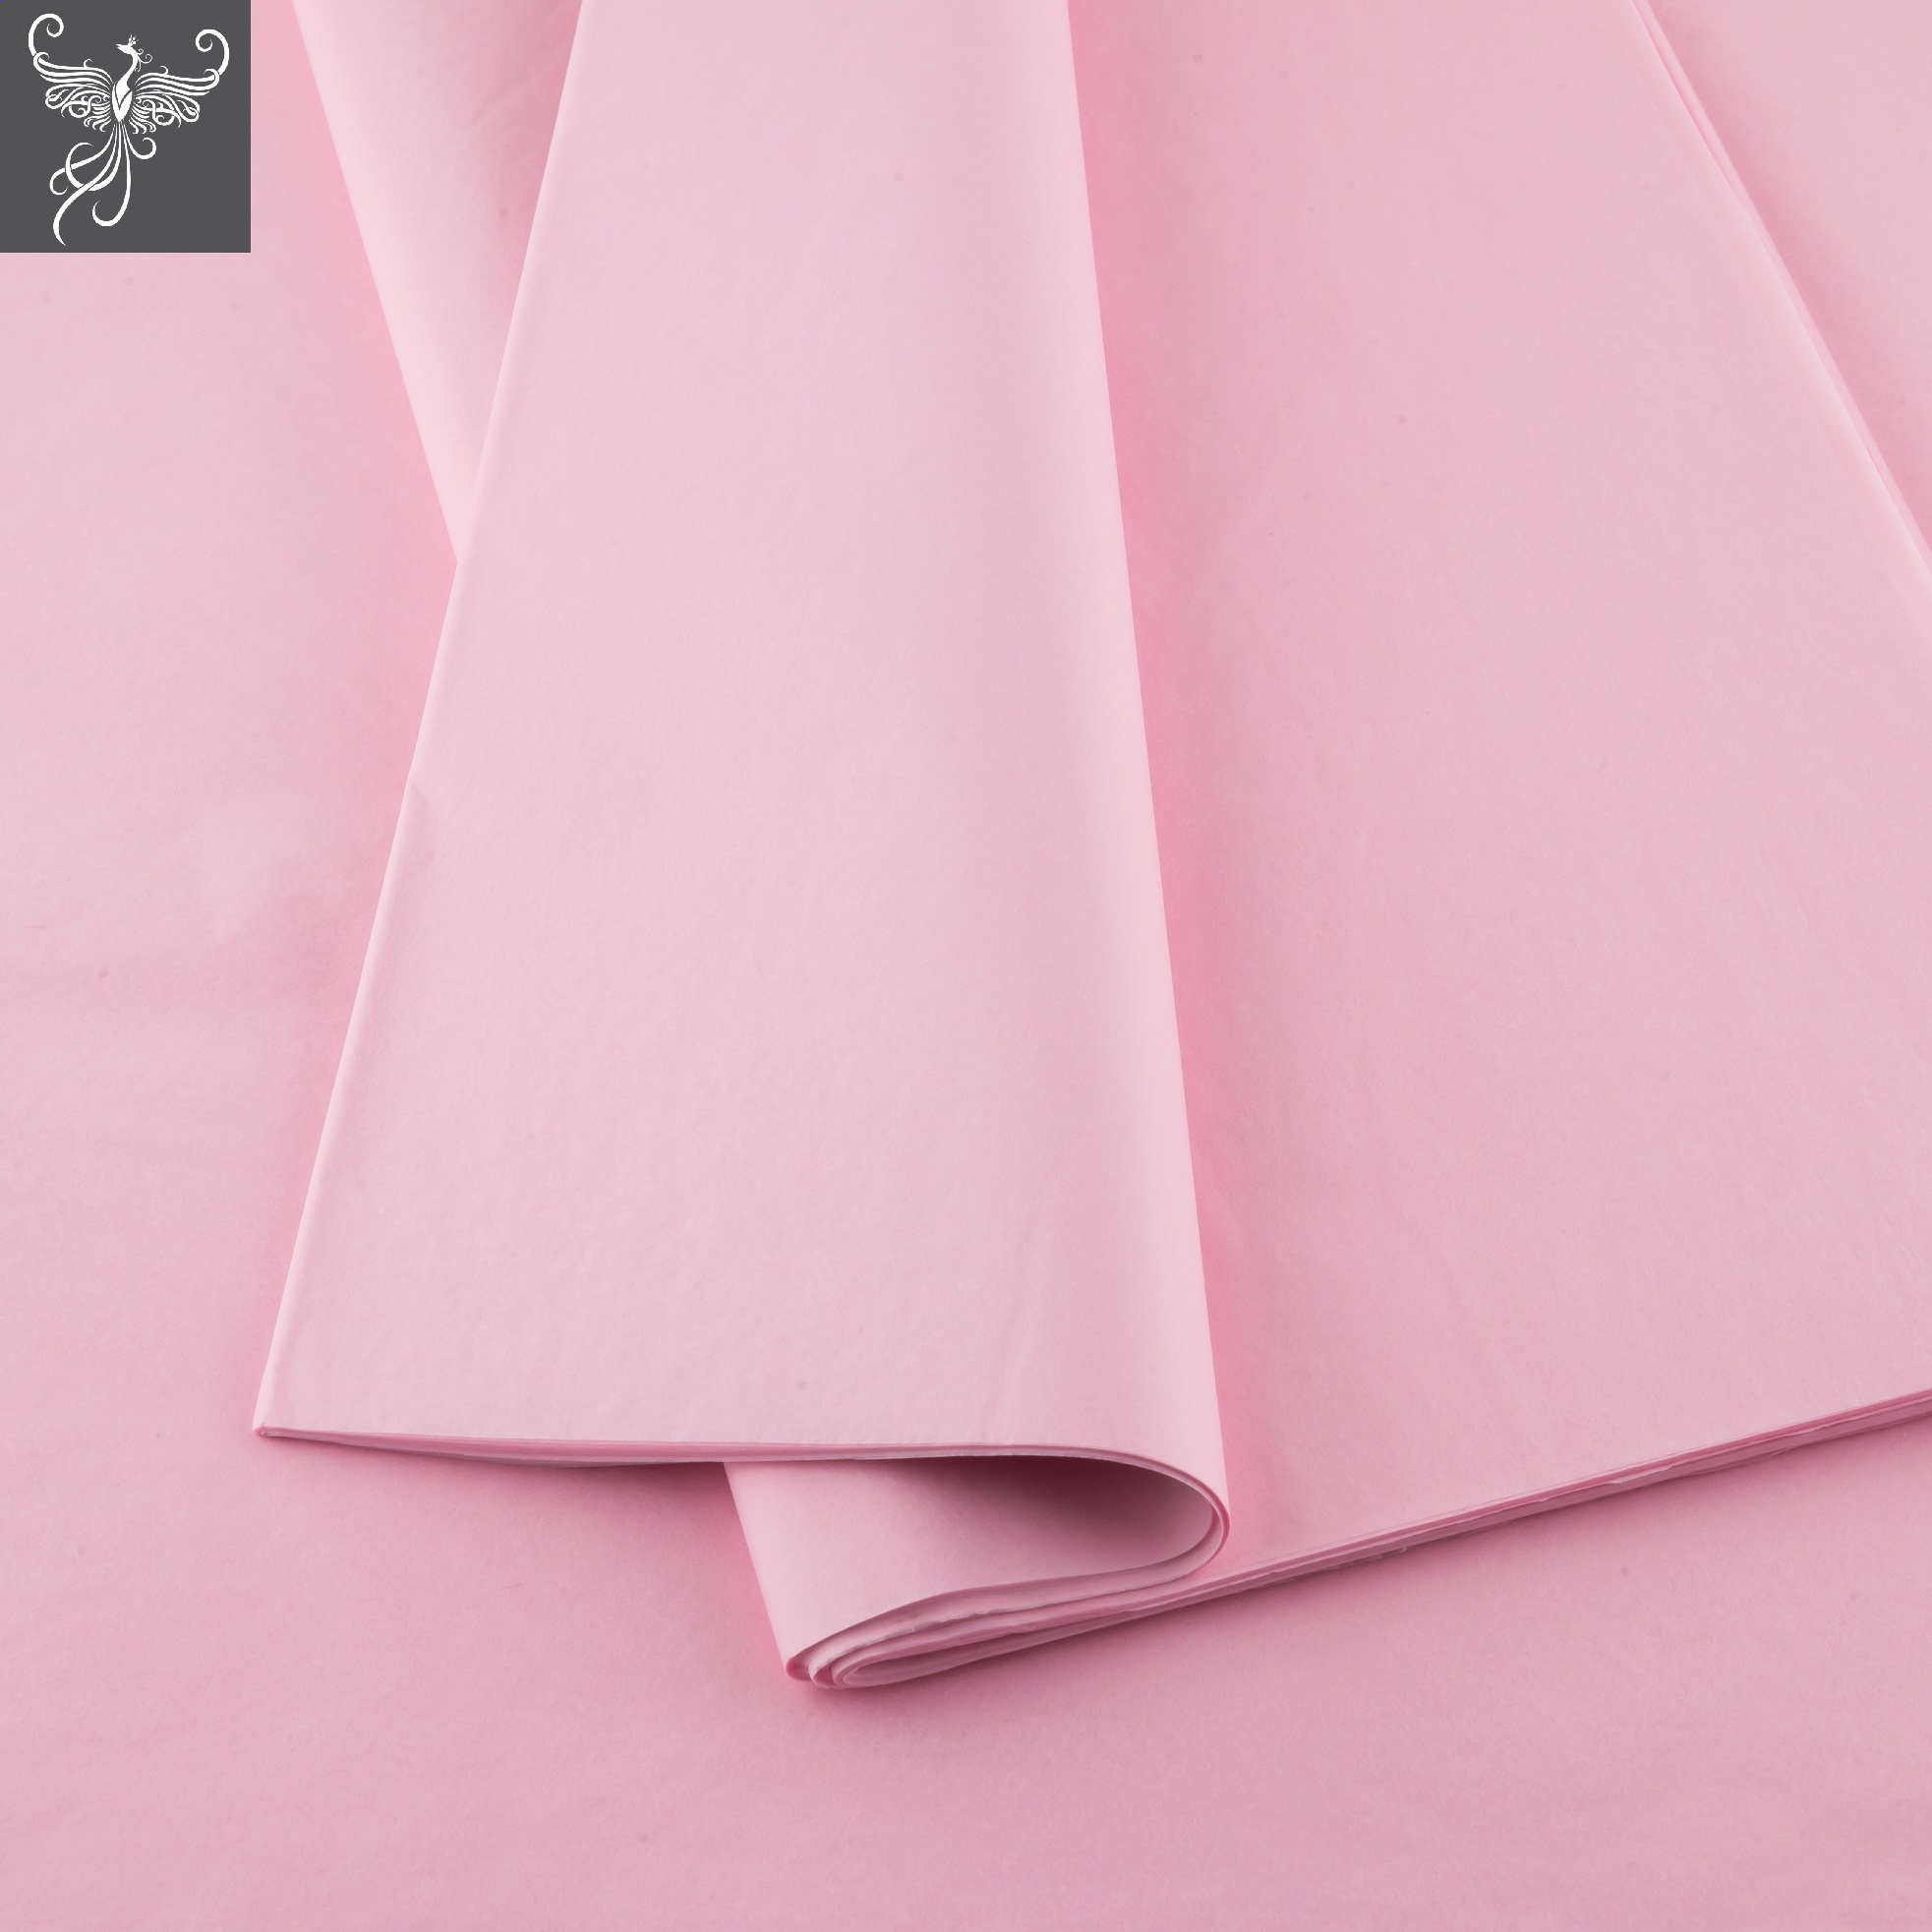 Plain tissue paper baby pink